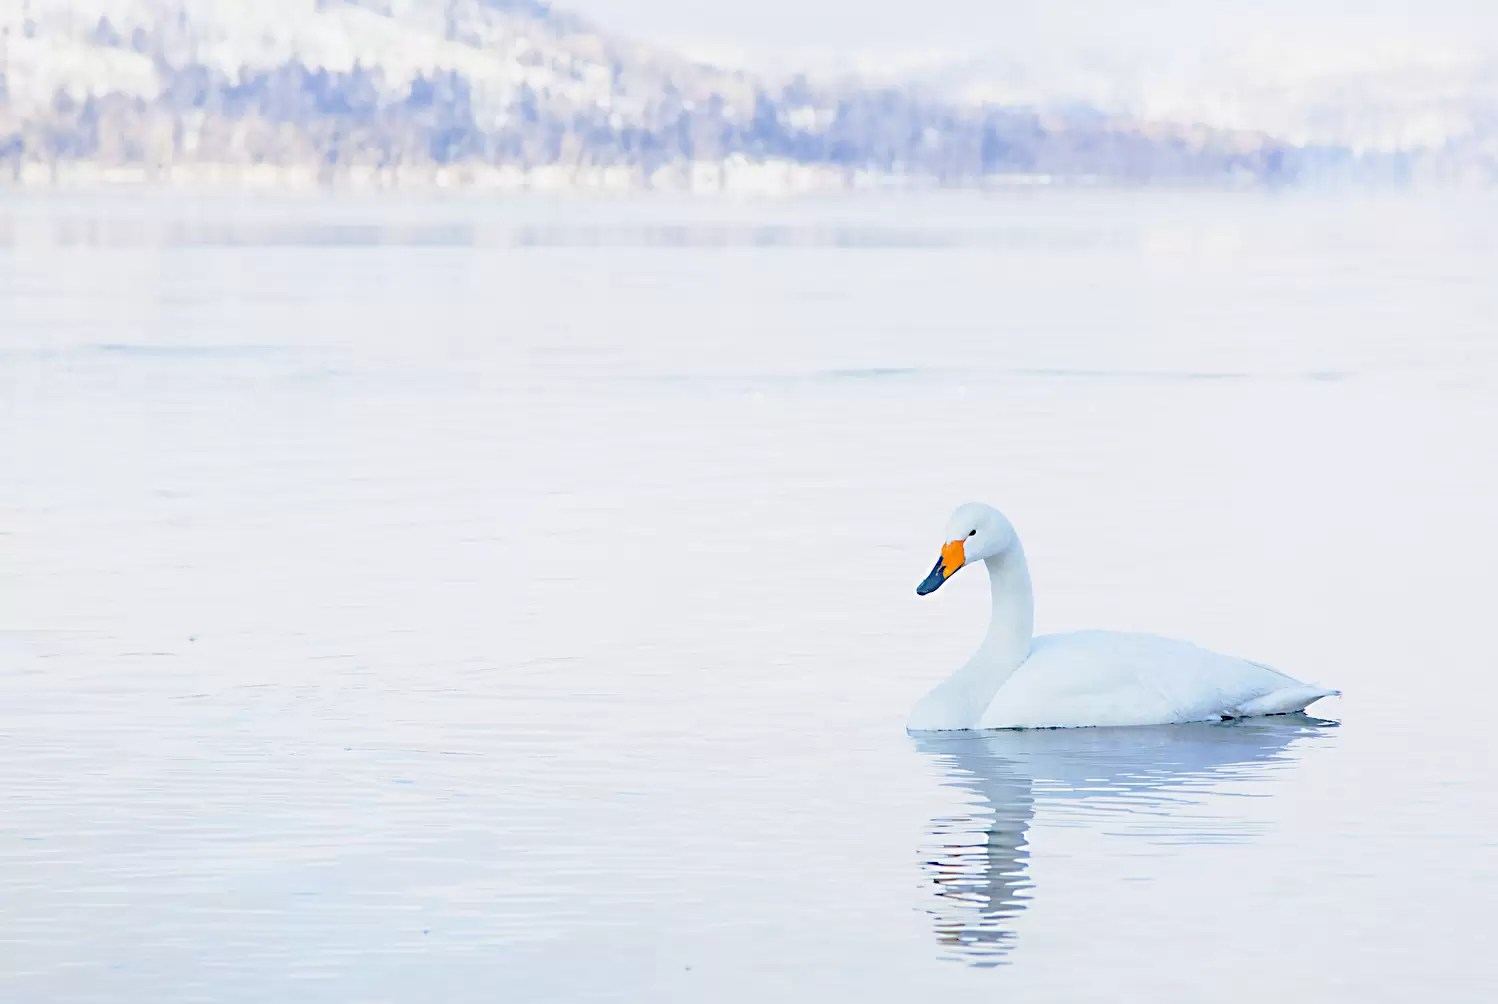 Japanese Whooper swans in winter